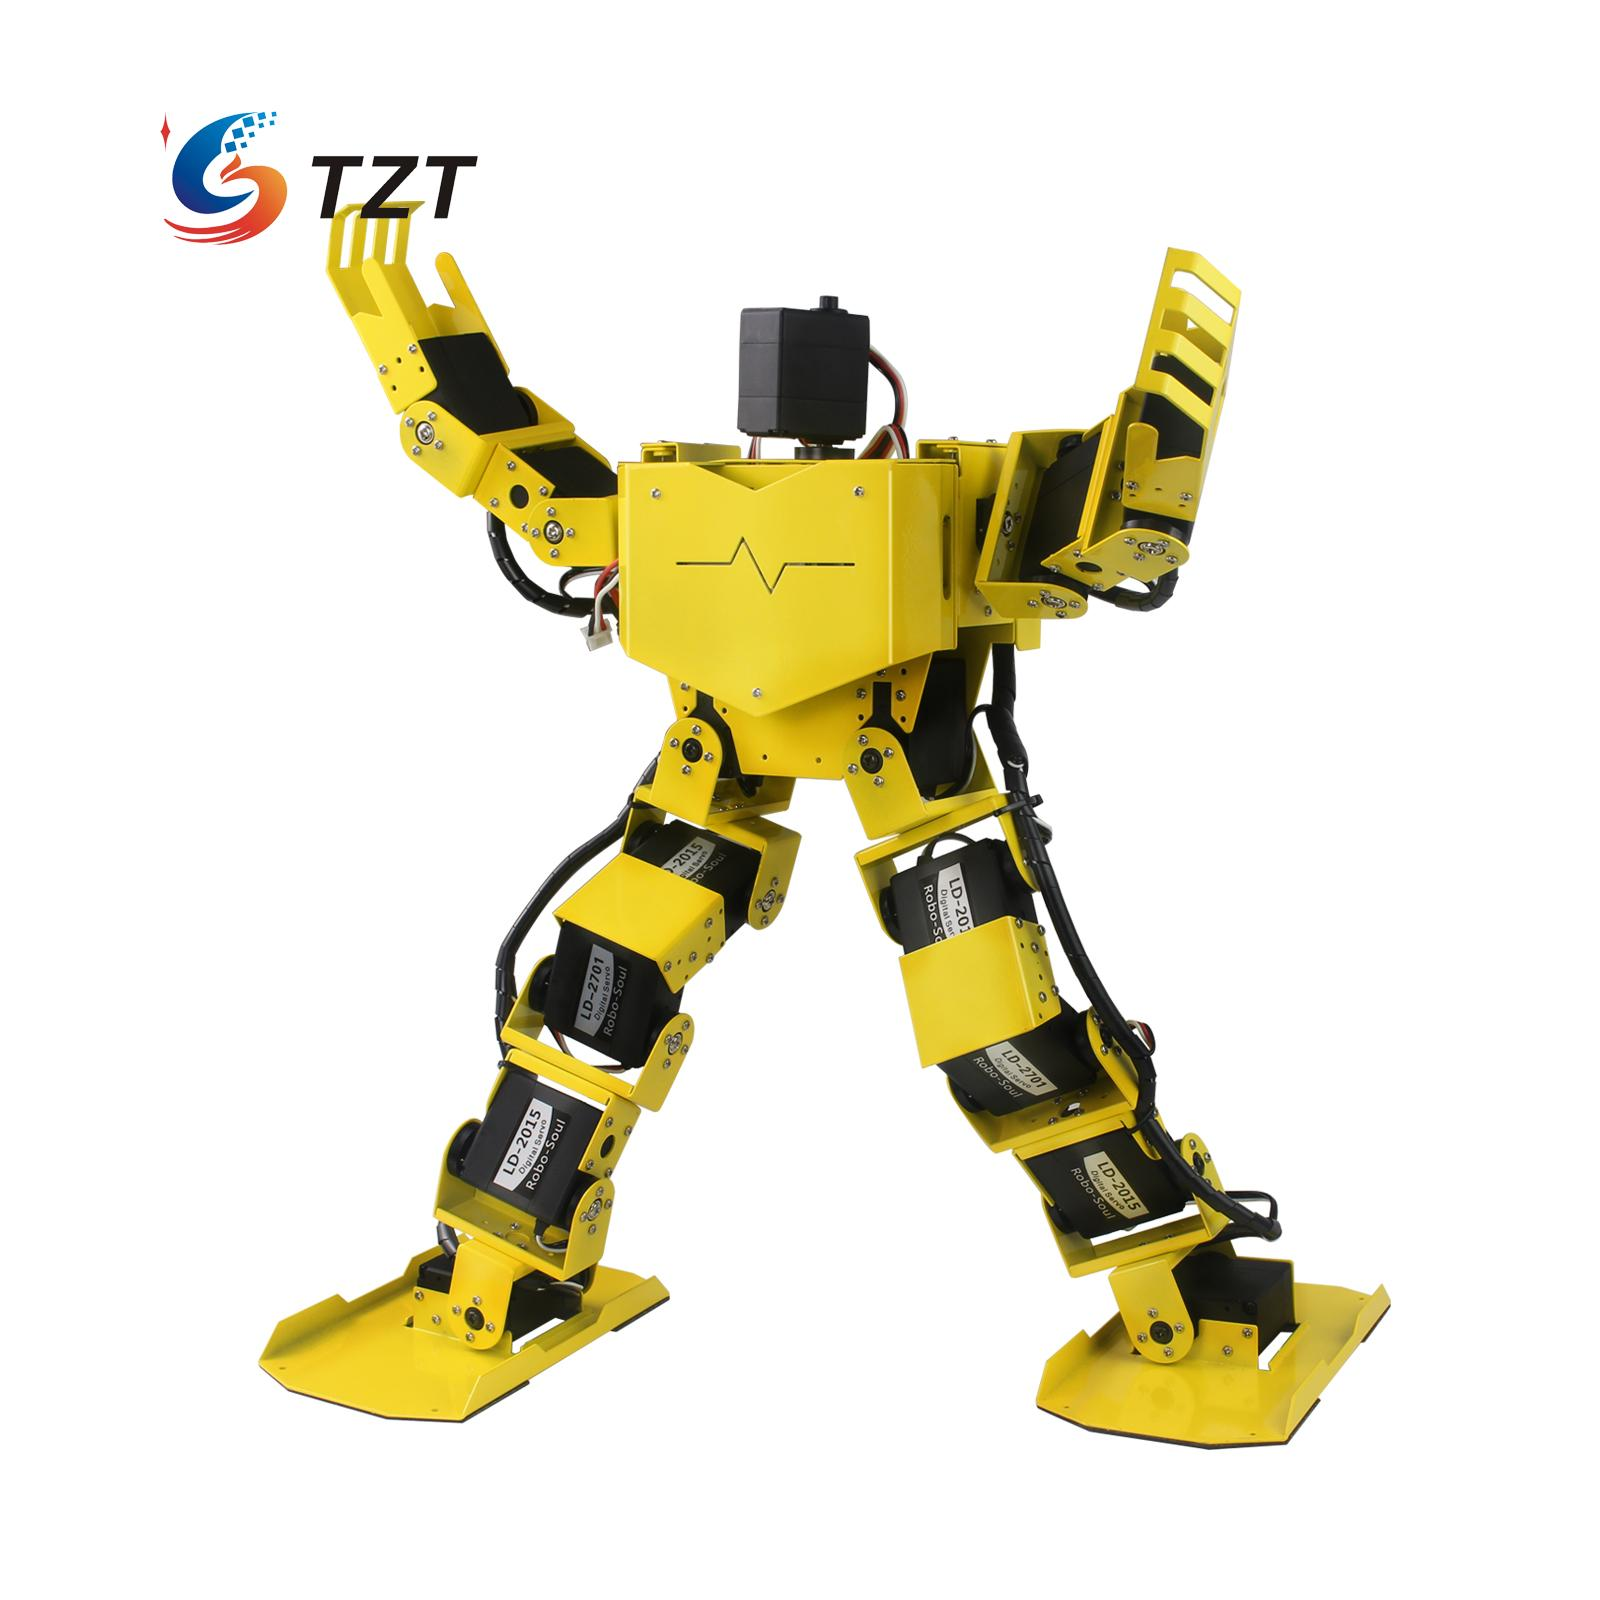 Robo-Soul H3.0 17DOF Biped Robotics Humanoid Robot Two-Leg Aluminum Frame Kit with 17pcs Servos - Yellow new 17 degrees of freedom humanoid biped robot teaching and research biped robot platform model no electronic control system